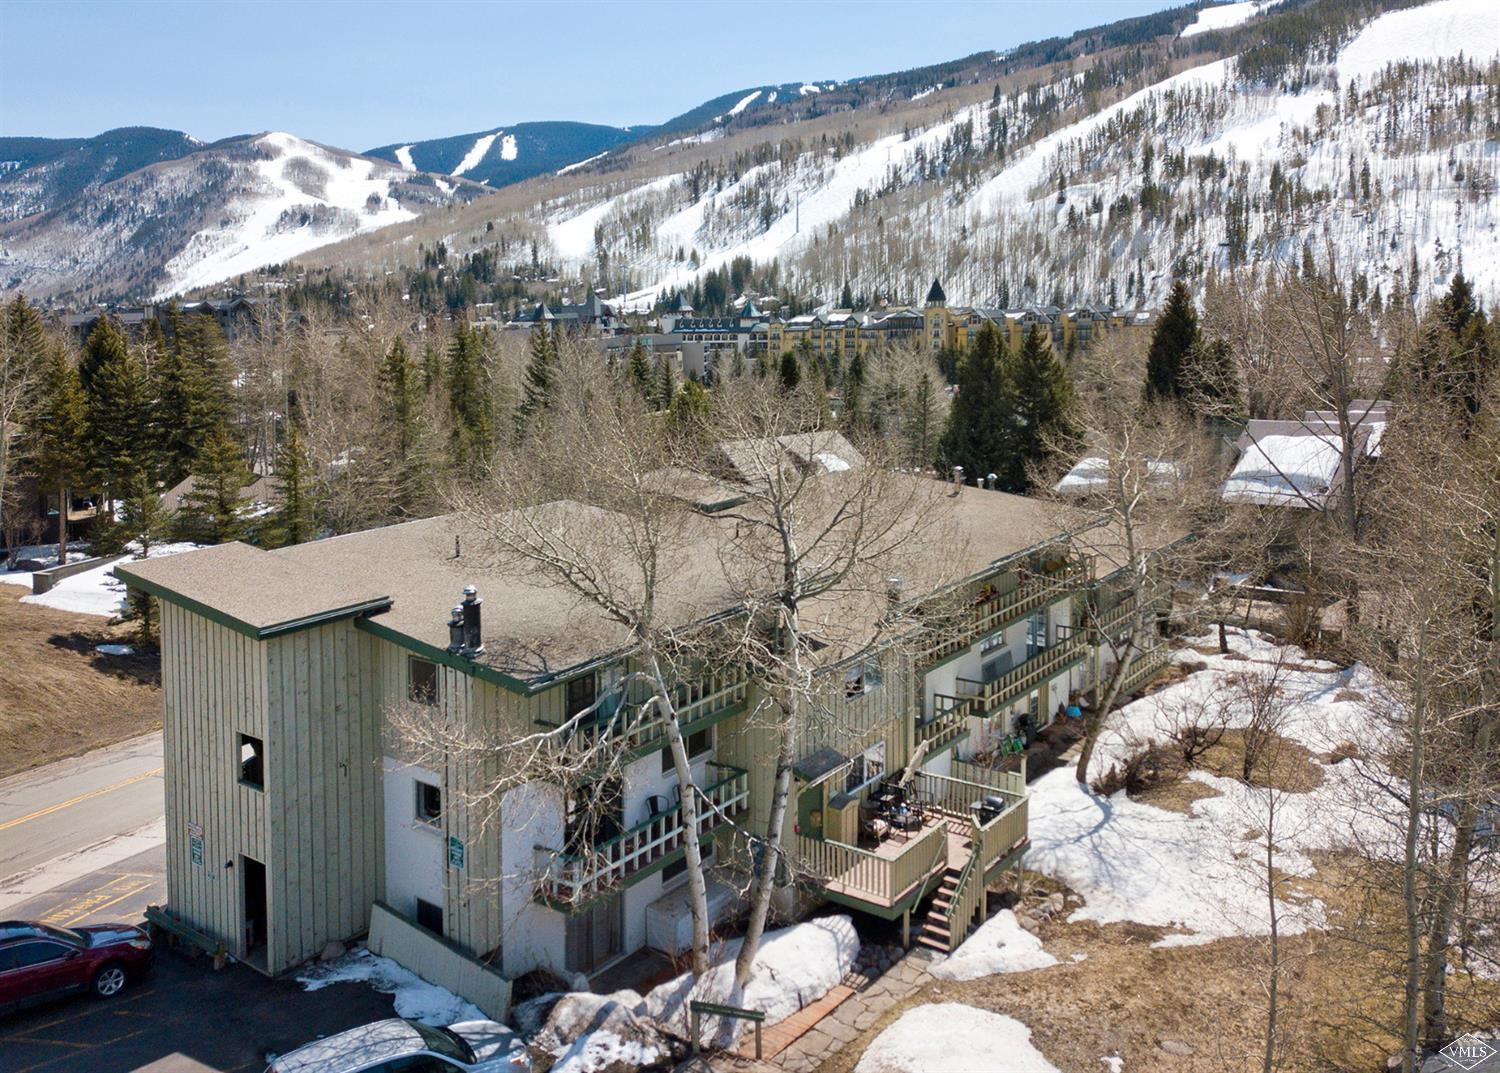 Sometimes where you live makes all the difference. Quick access to Lionshead and Vail Village via pedestrian overpass, drive up to Piney Lake or take your dog for a hike on the North Trail. Well situated for a life outside. Great unit with natural light, deck and ski slope views. Utilize the Vail Indeed program, short term rent or provide housing for your employees. Remodeled with hardwood floors, brand new kitchen and bathroom. Offered fully furnished. Low HOA dues include heat.